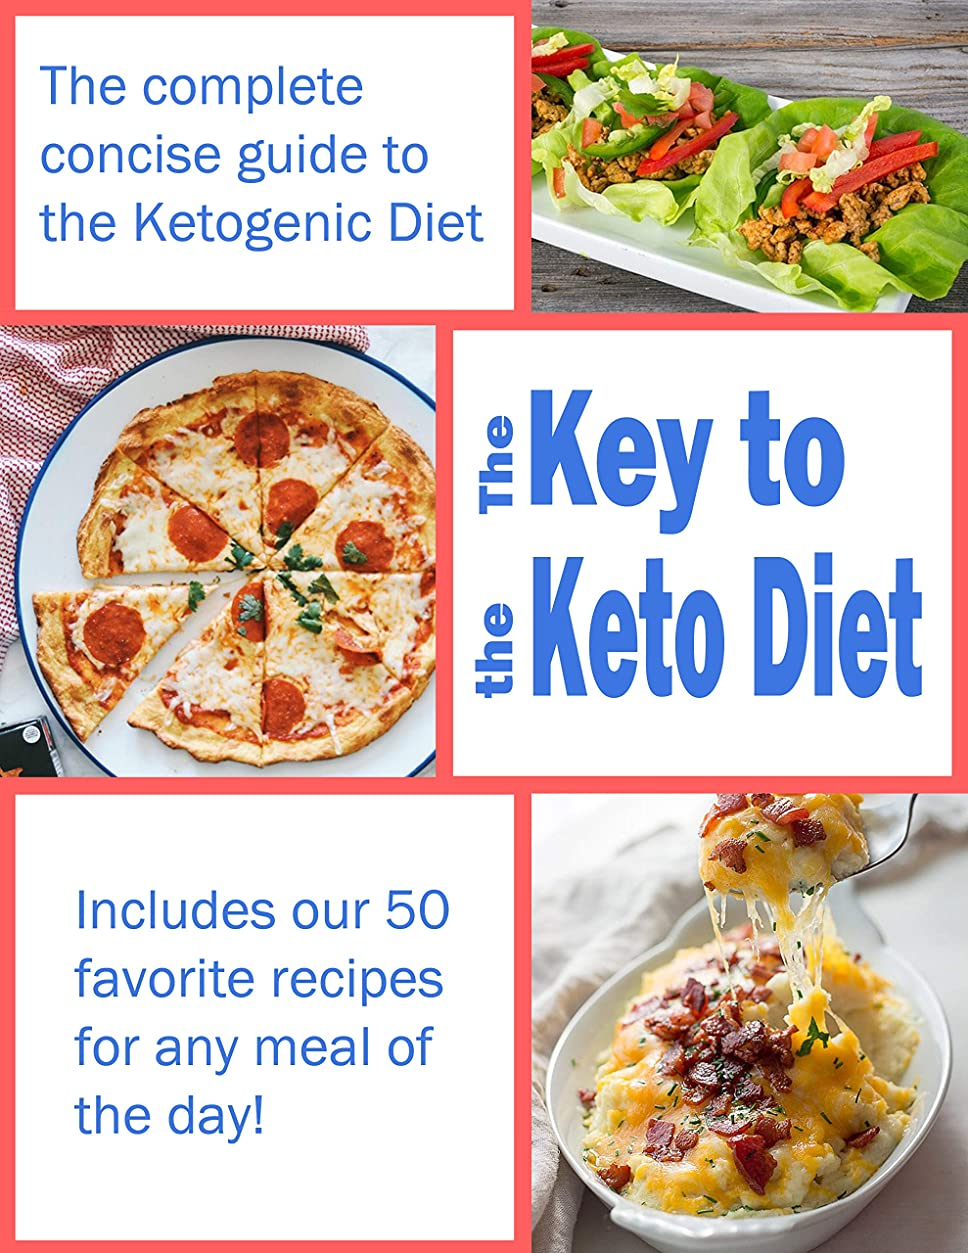 The Key to the Keto Diet: The complete concise guide to the Ketogenic Diet (English Edition)